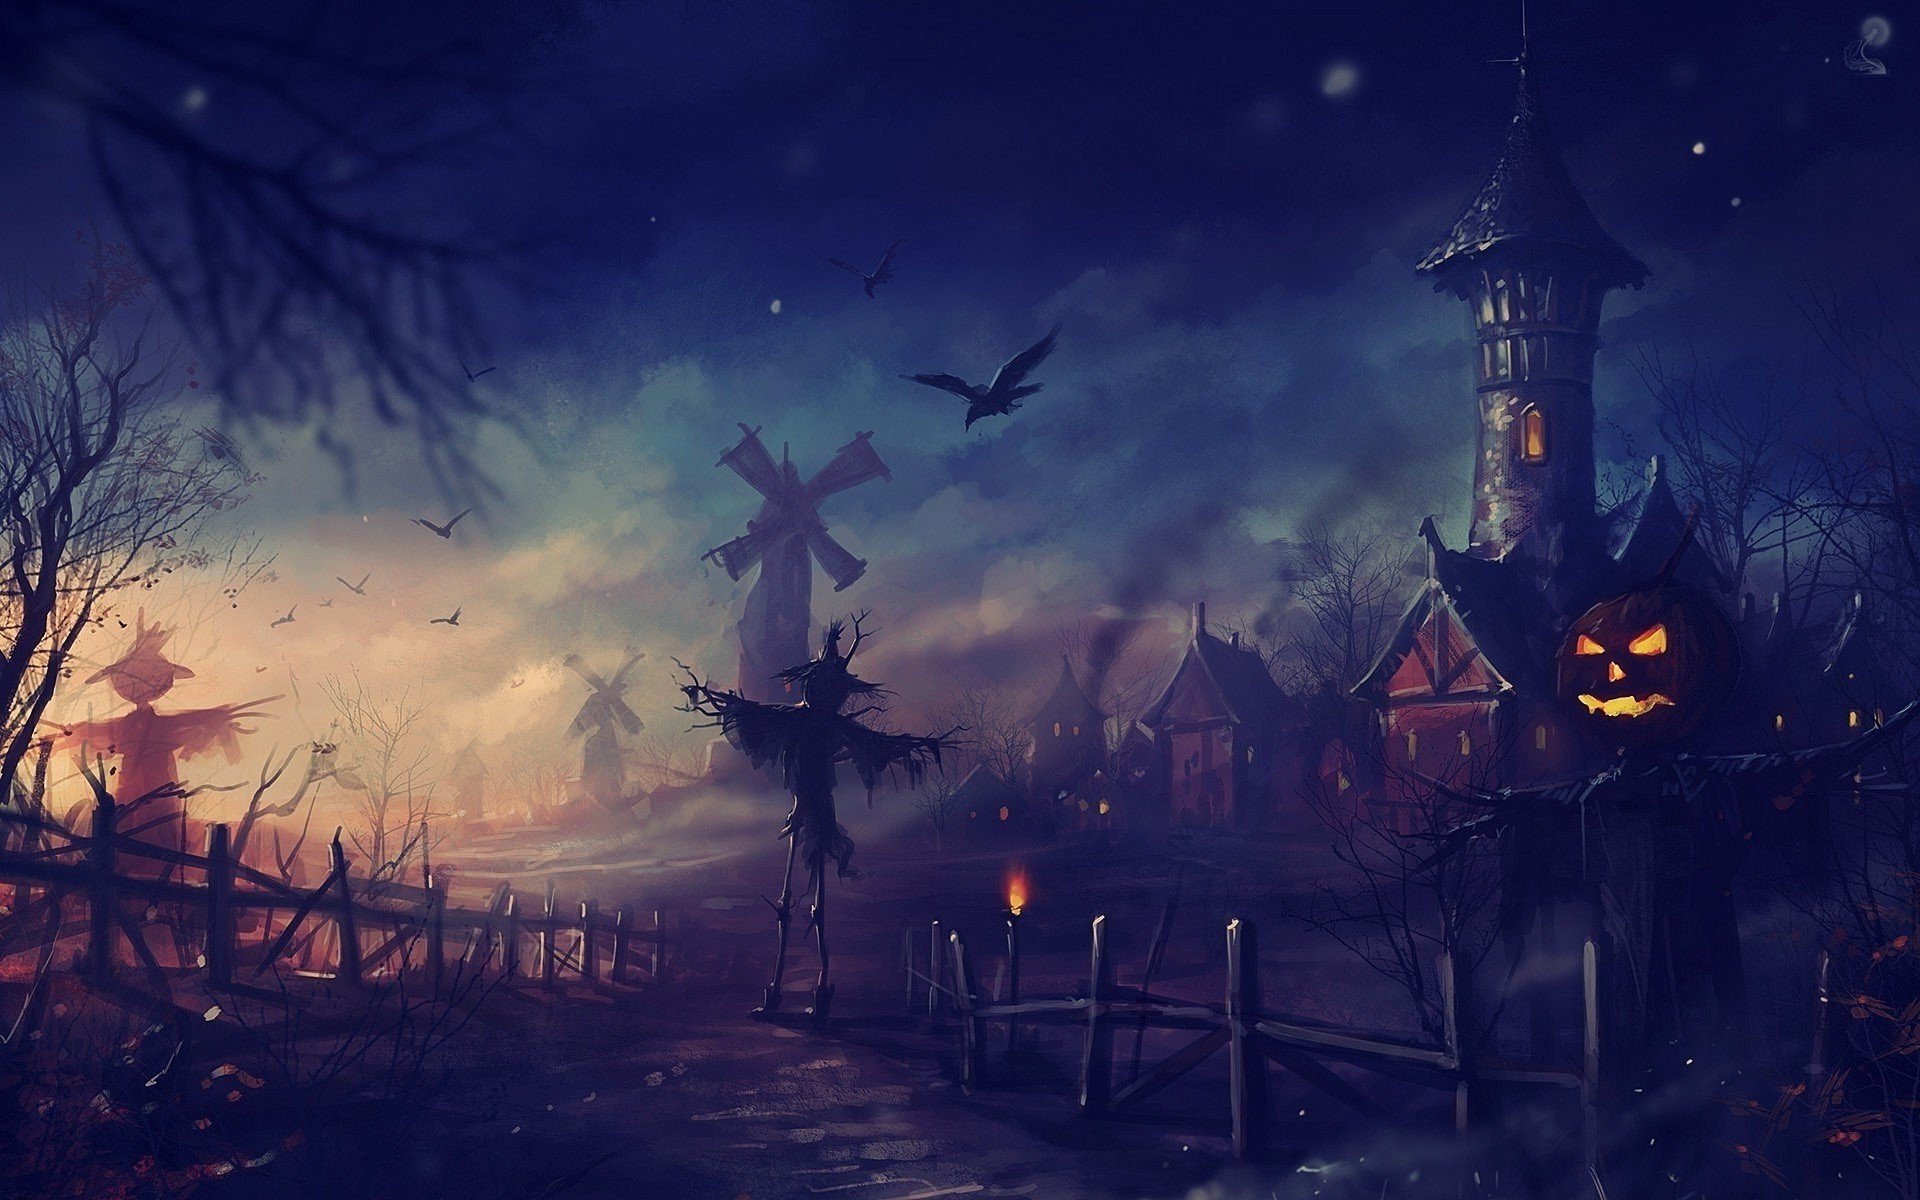 Scary Halloween Wallpapers for Desktop (54+ images)